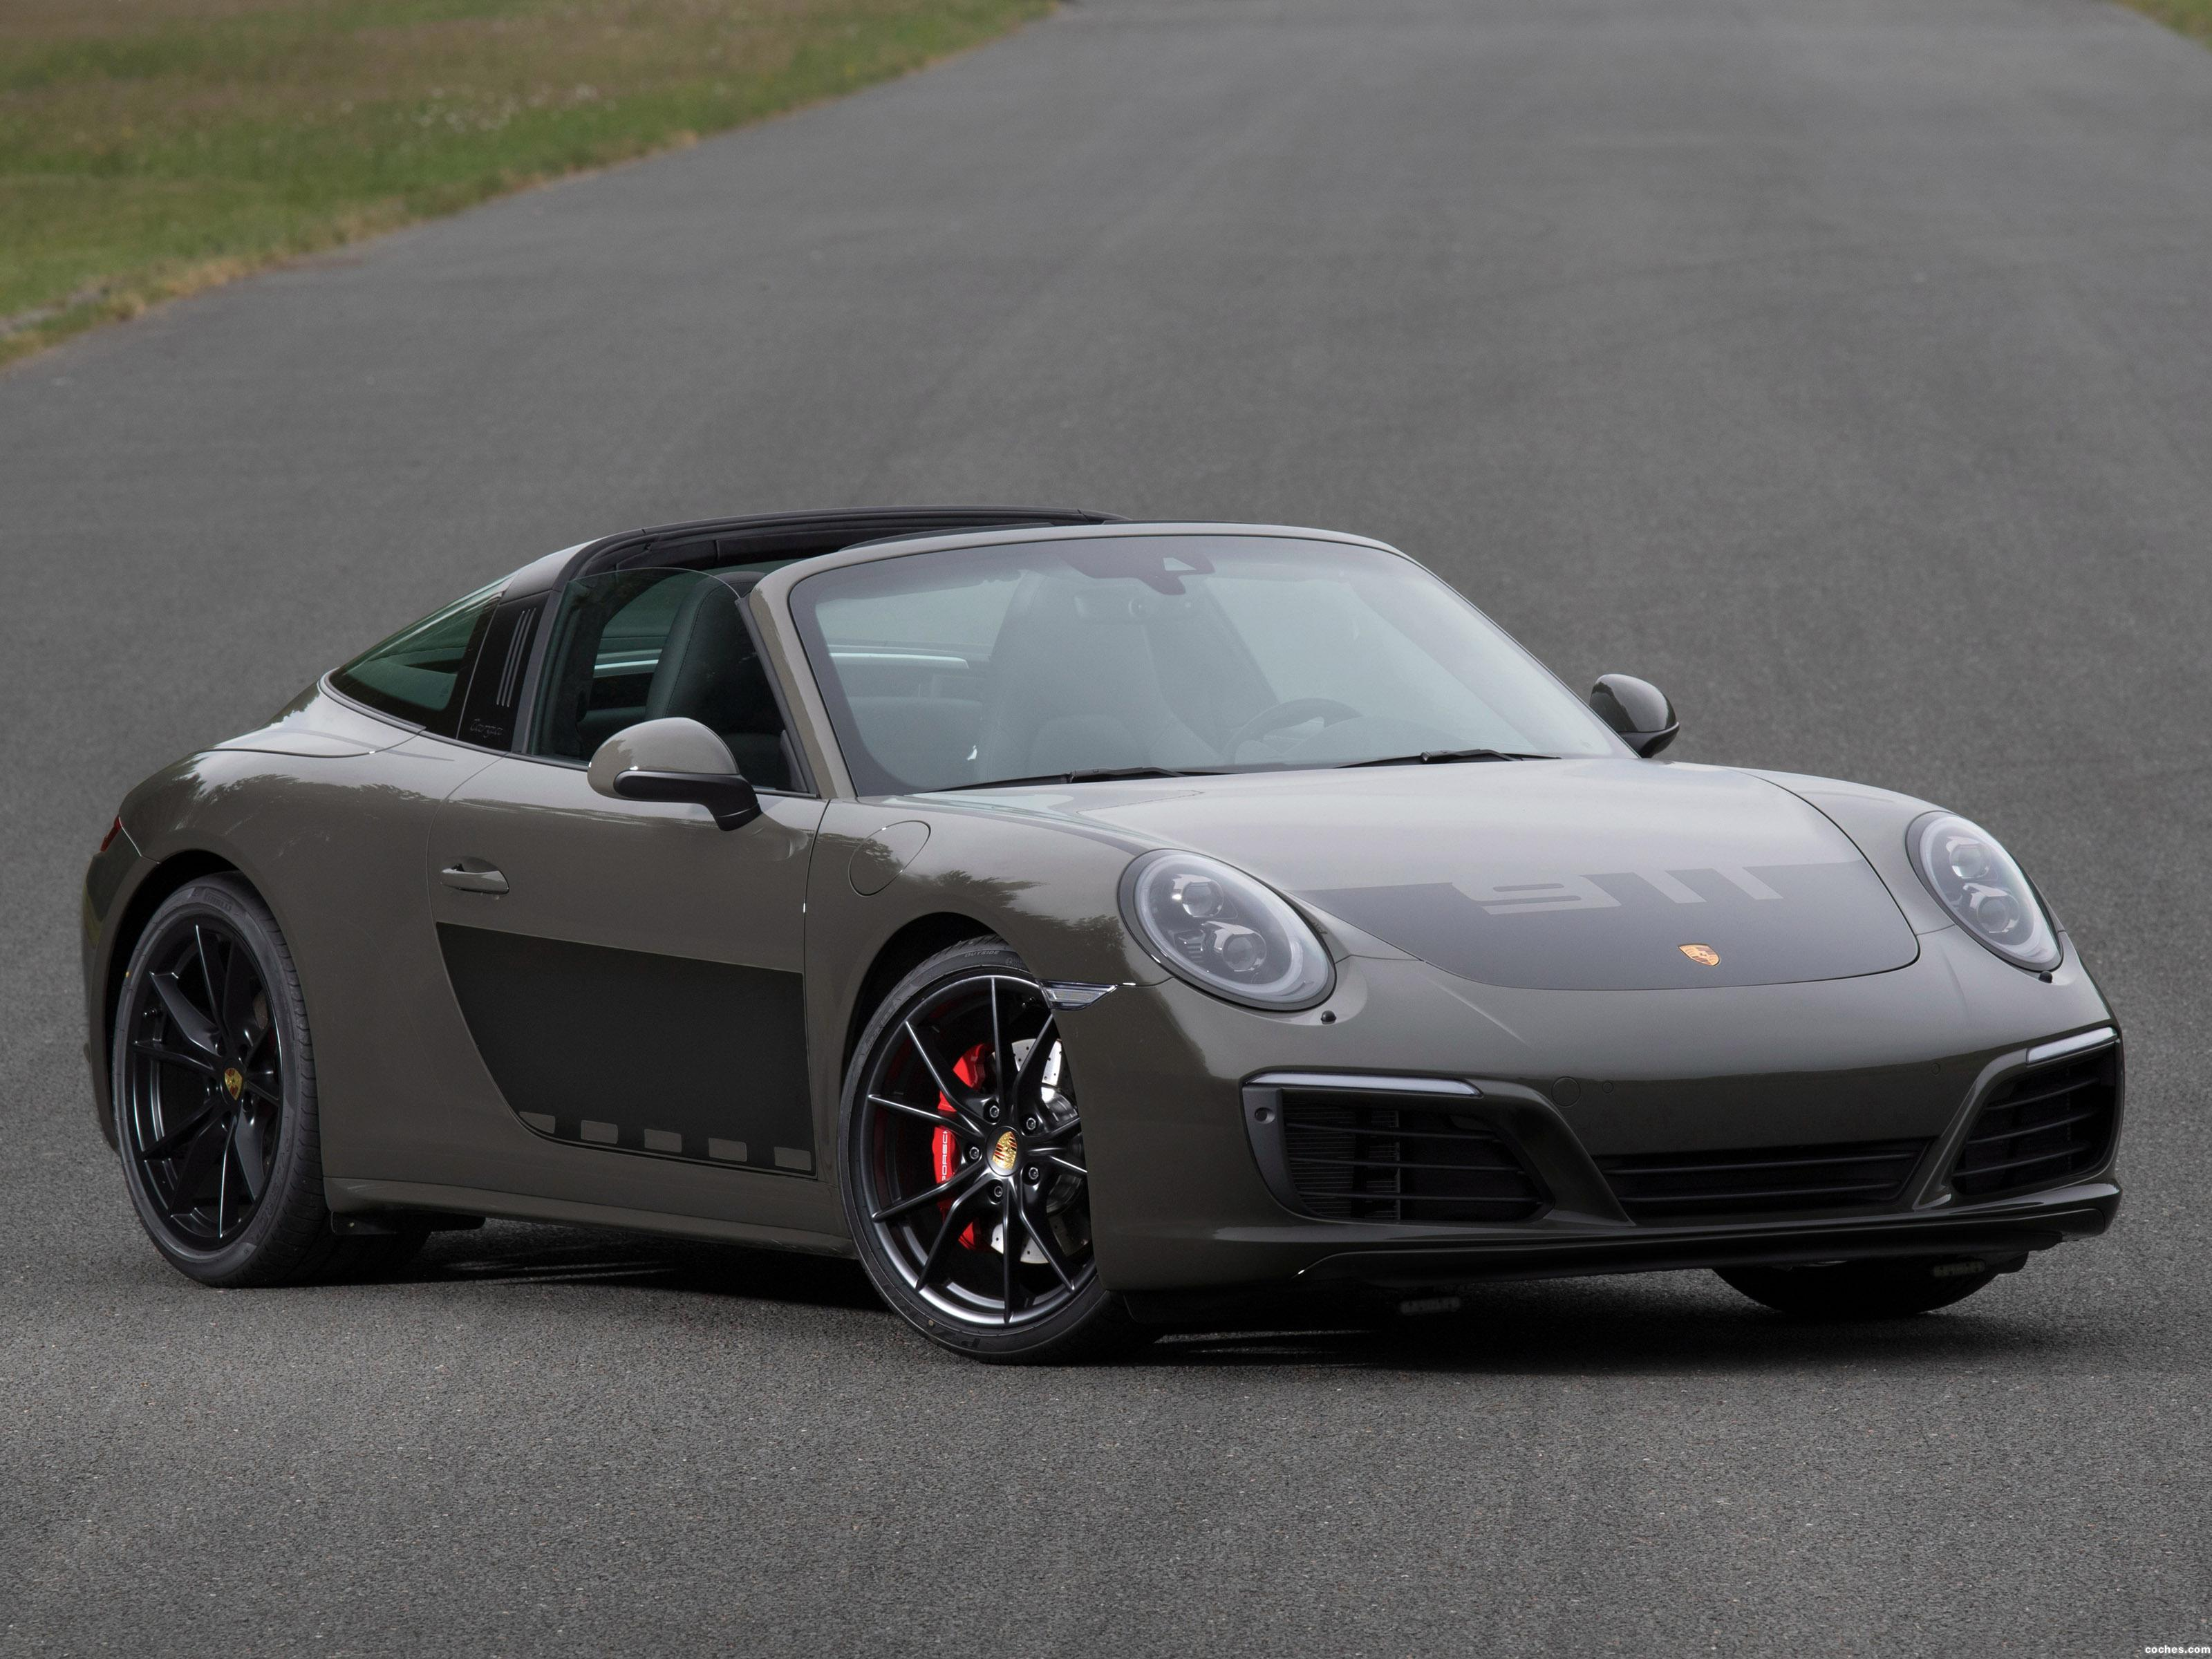 porsche_911-targa-4s-exclusive-alex-edition-991-2017_r3.jpg